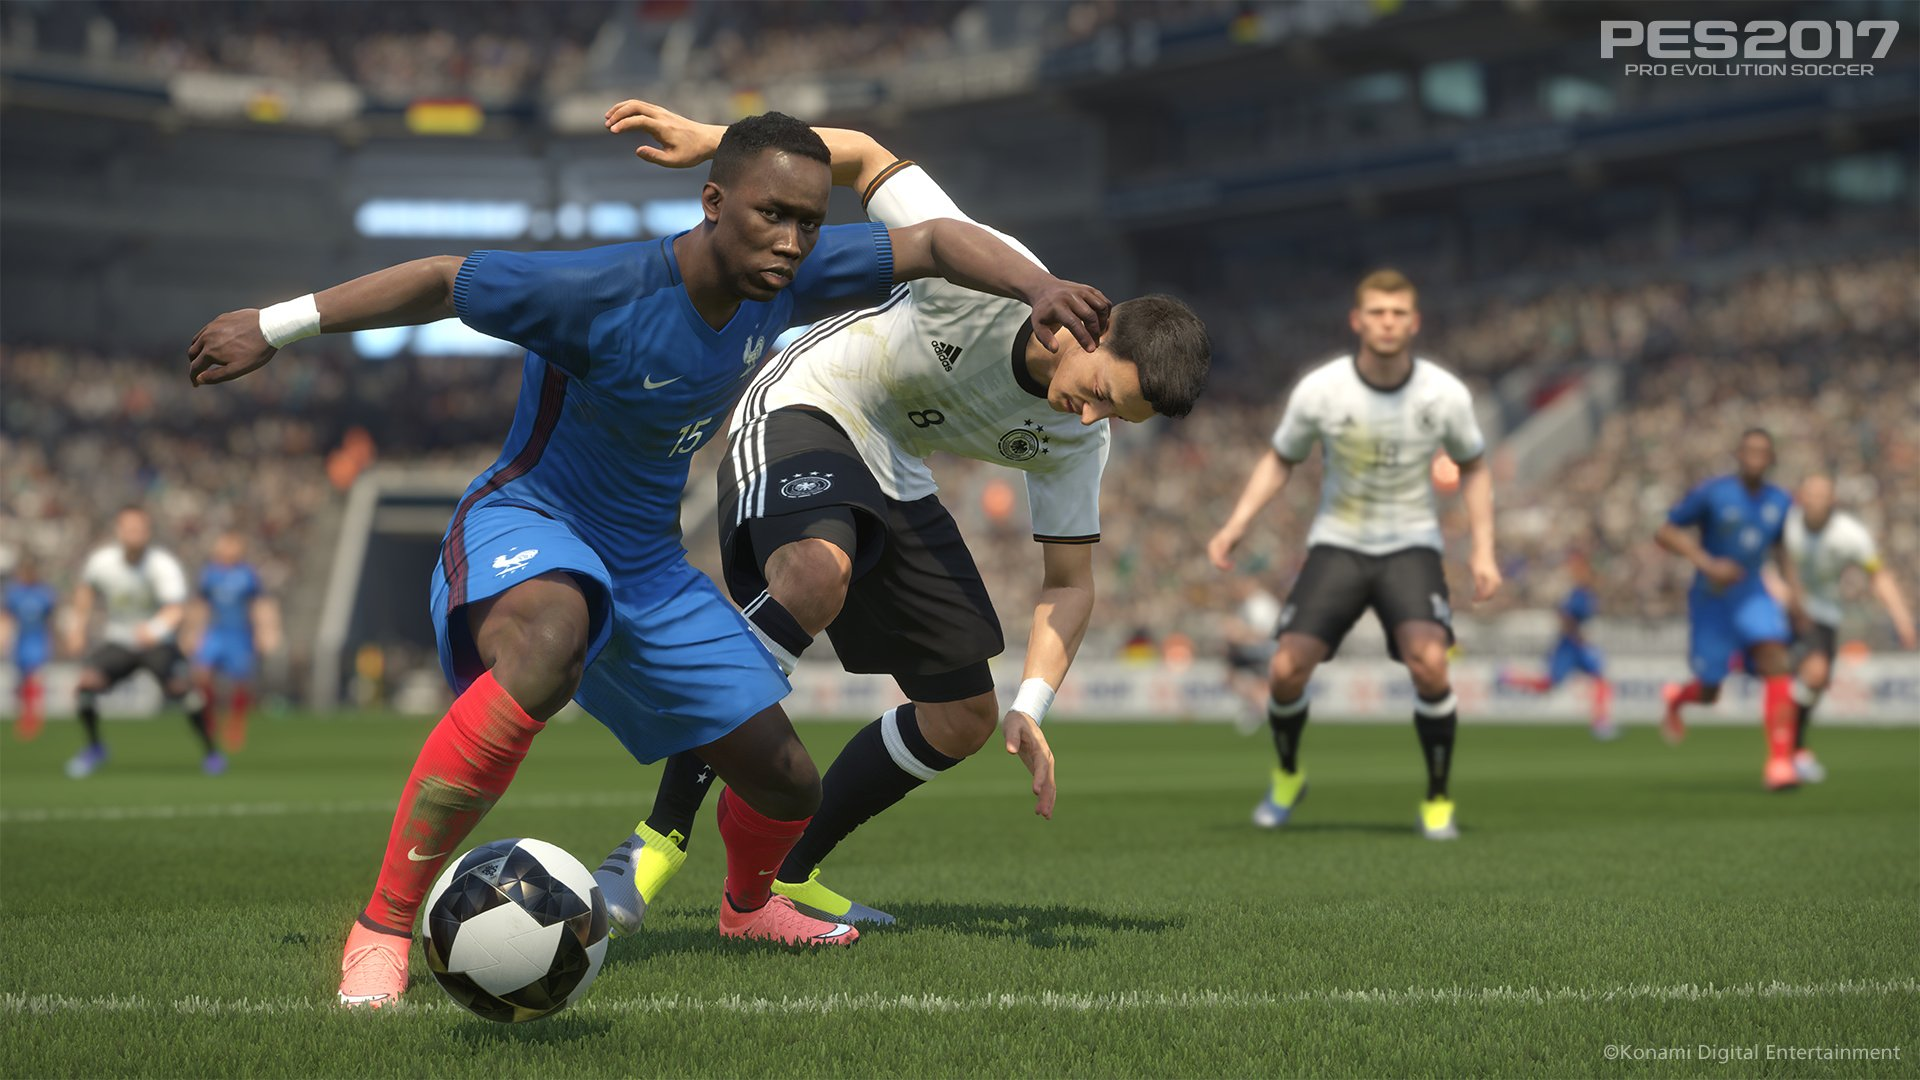 PES 2017 Wants to Lift the Champions League on PS4 7374cf468ec99